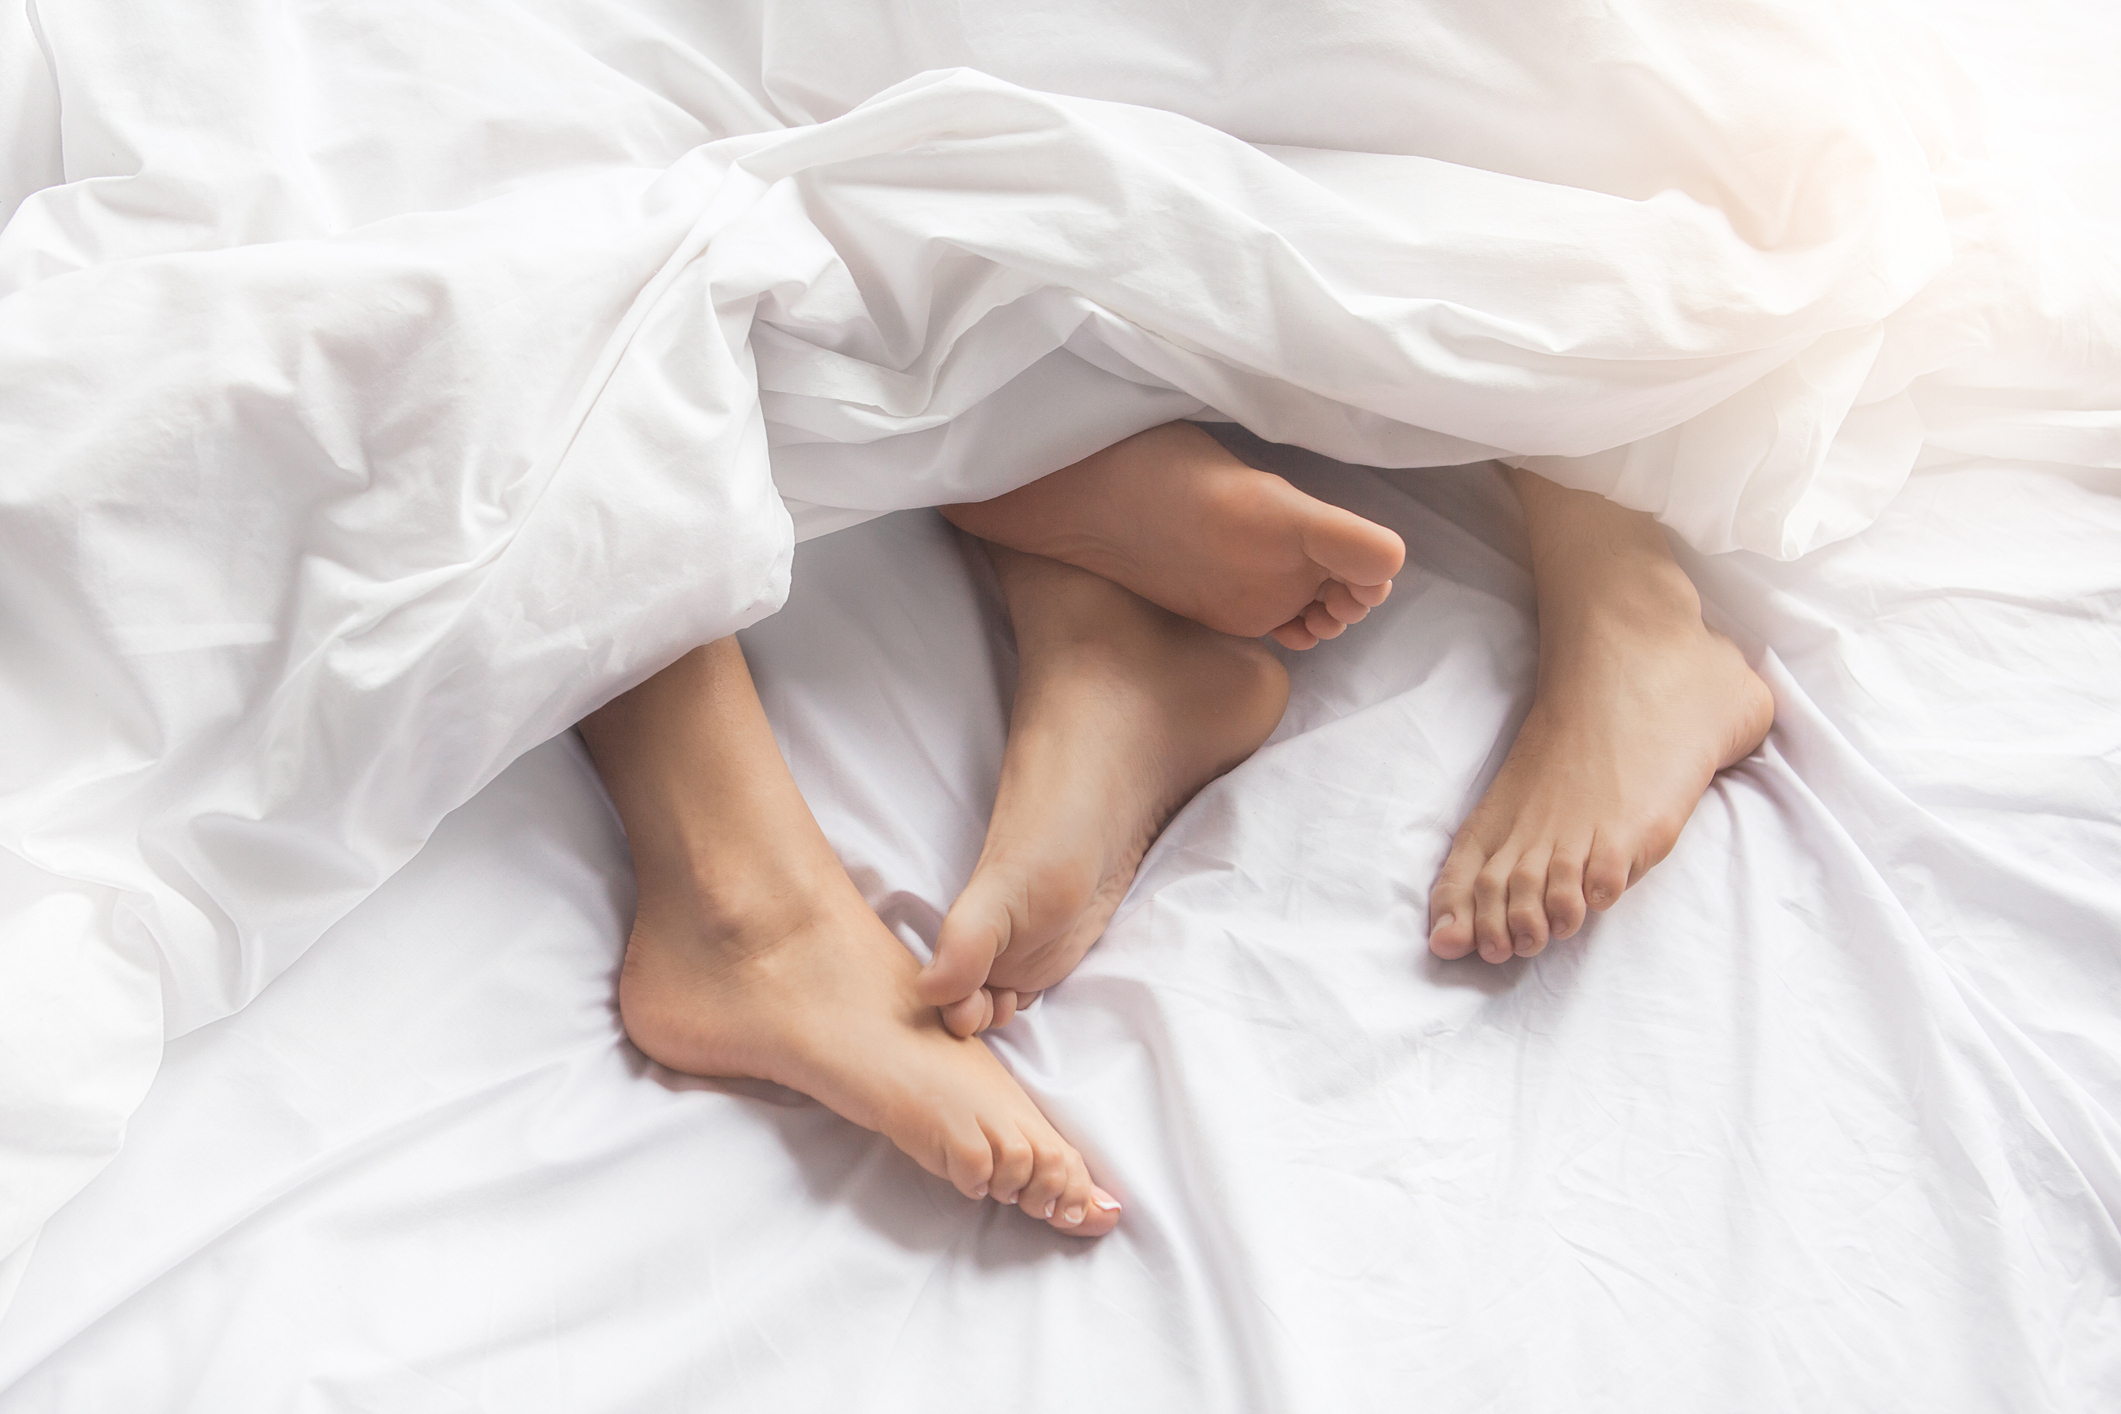 We may have evolved to have sex in private to stop others stealing our mate, study says